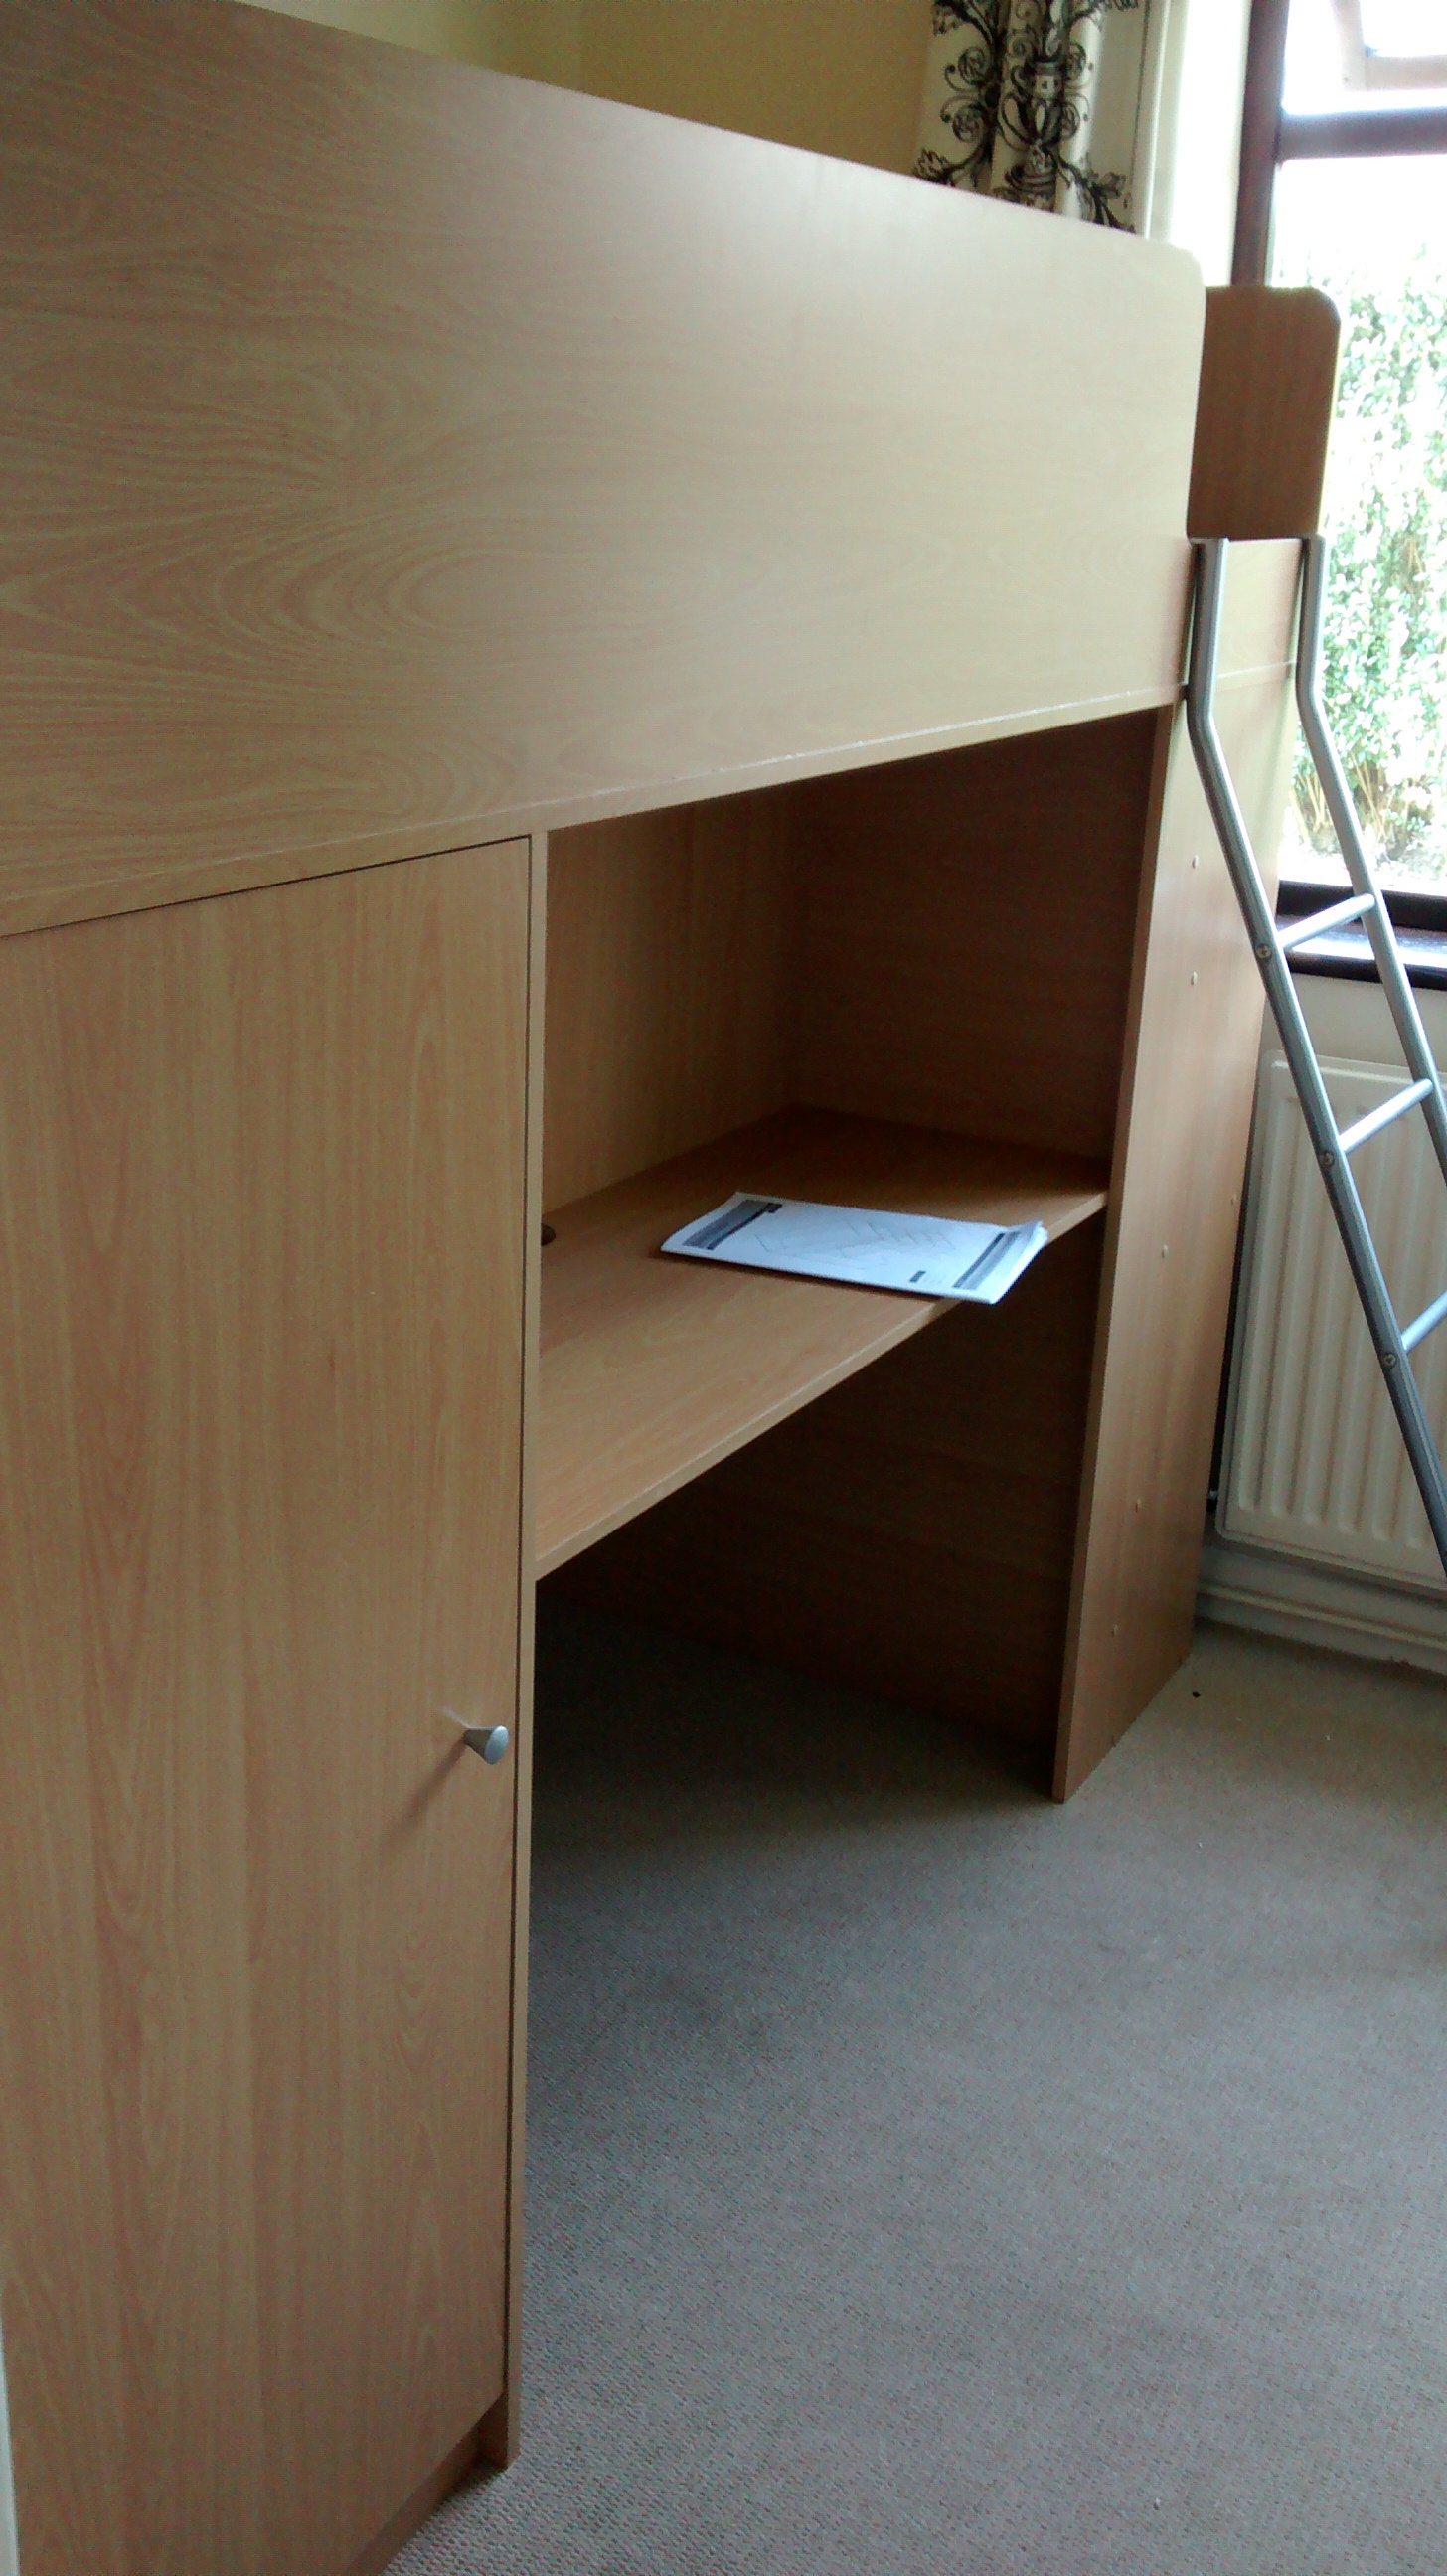 Flat Pack Furniture Assembly 163 20 Hour